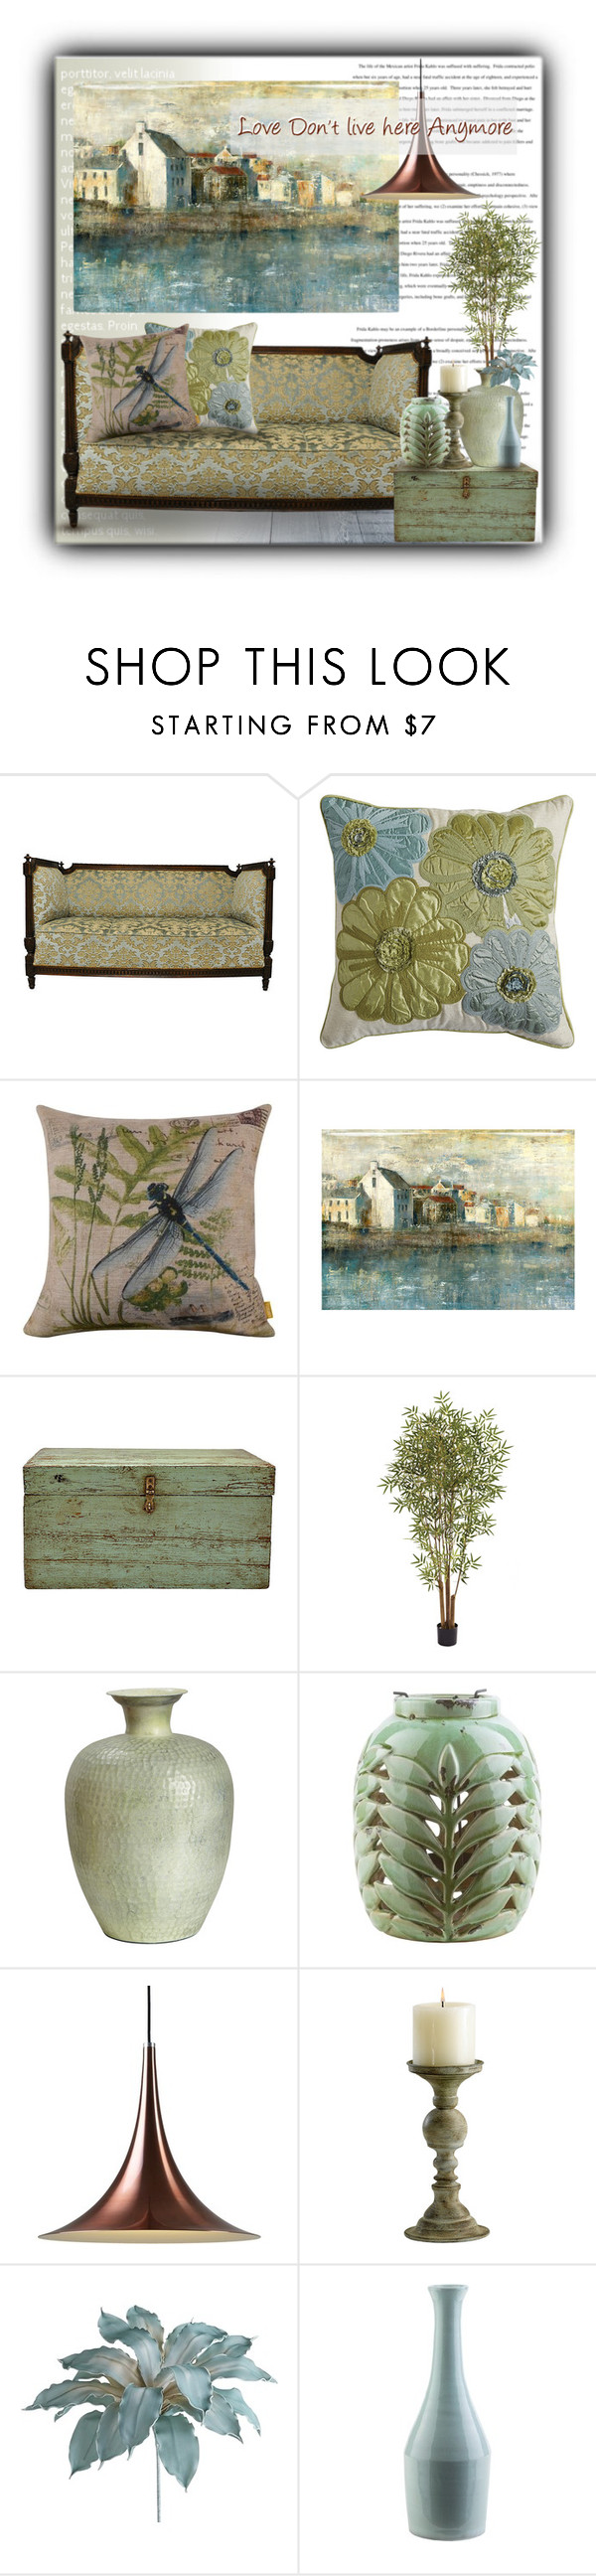 """""""Love don't live here anymore..."""" by sapora ❤ liked on Polyvore featuring interior, interiors, interior design, home, home decor, interior decorating, Pier 1 Imports, Ballard Designs, Nearly Natural and Surya"""